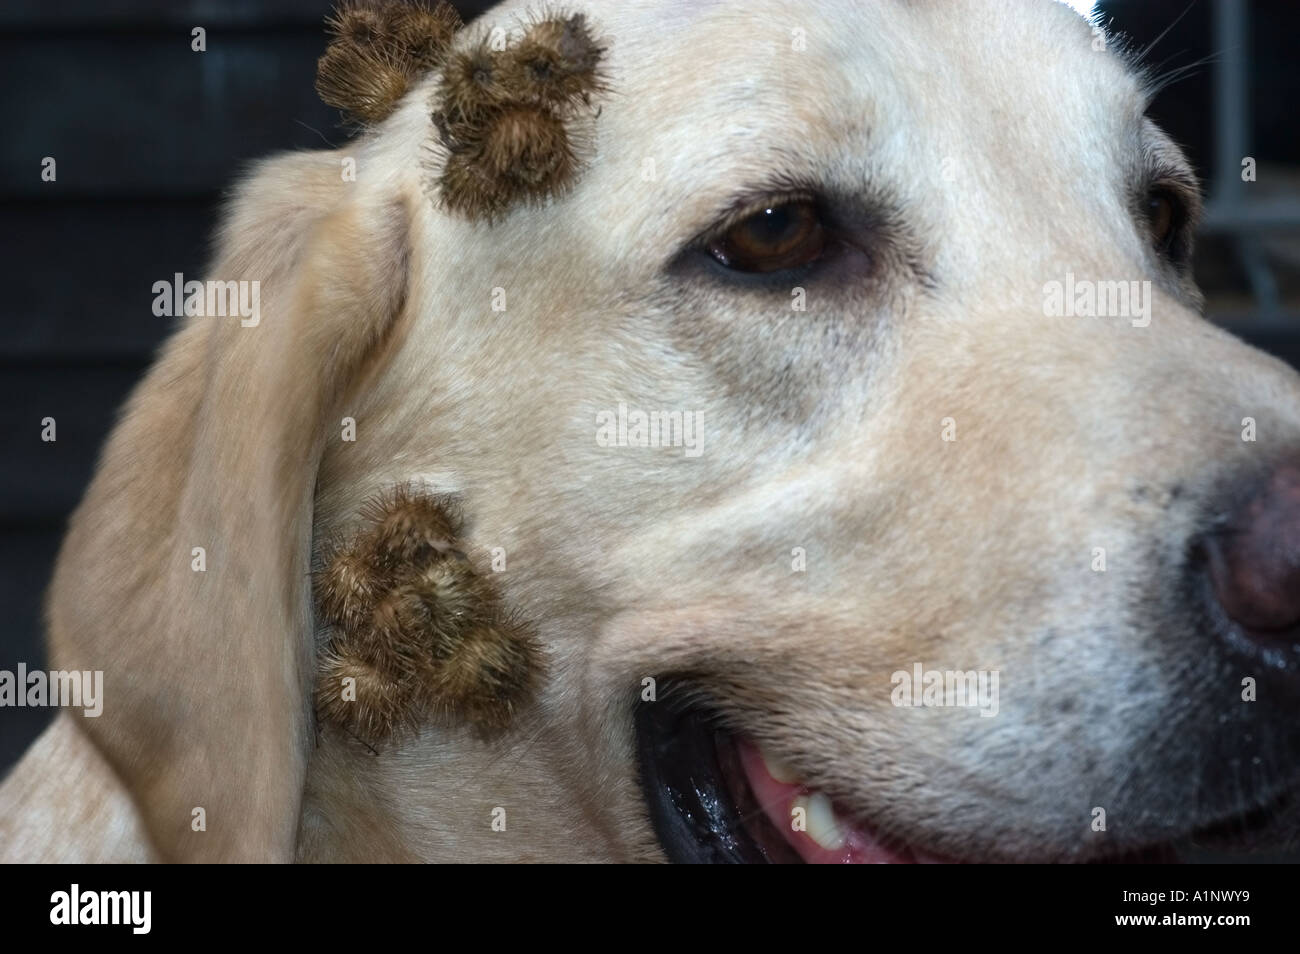 Burdock Burs On Yellow Lab Puppy Stock Photo 5888120 Alamy